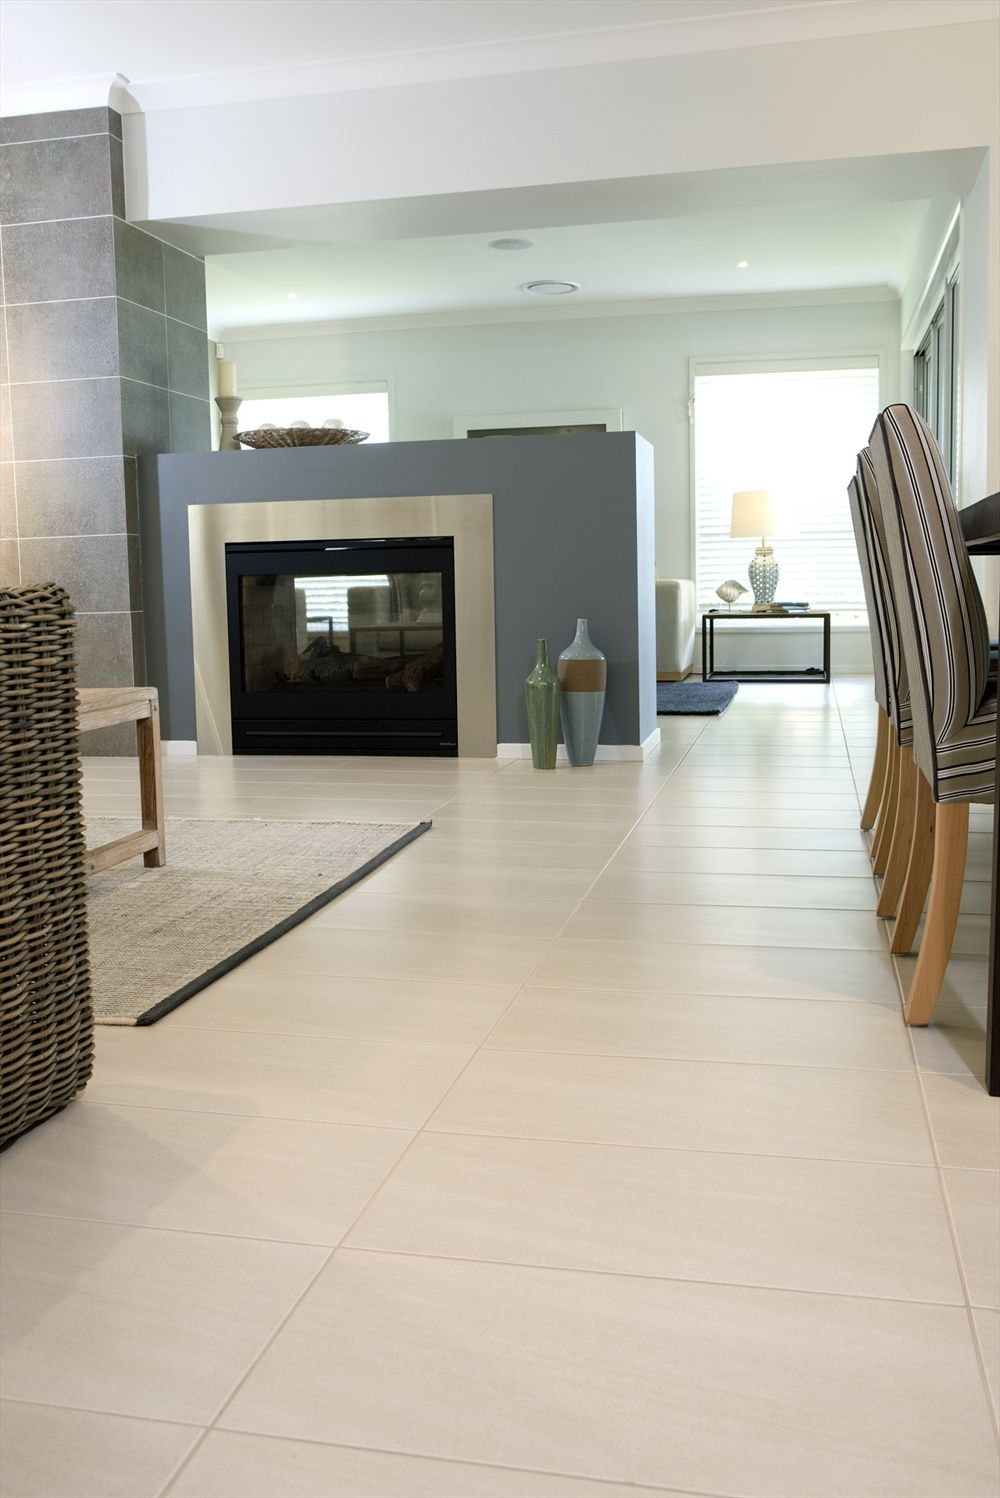 What Do You Think Of This Living Rooms Tile Idea I Got From Beaumont Tiles?